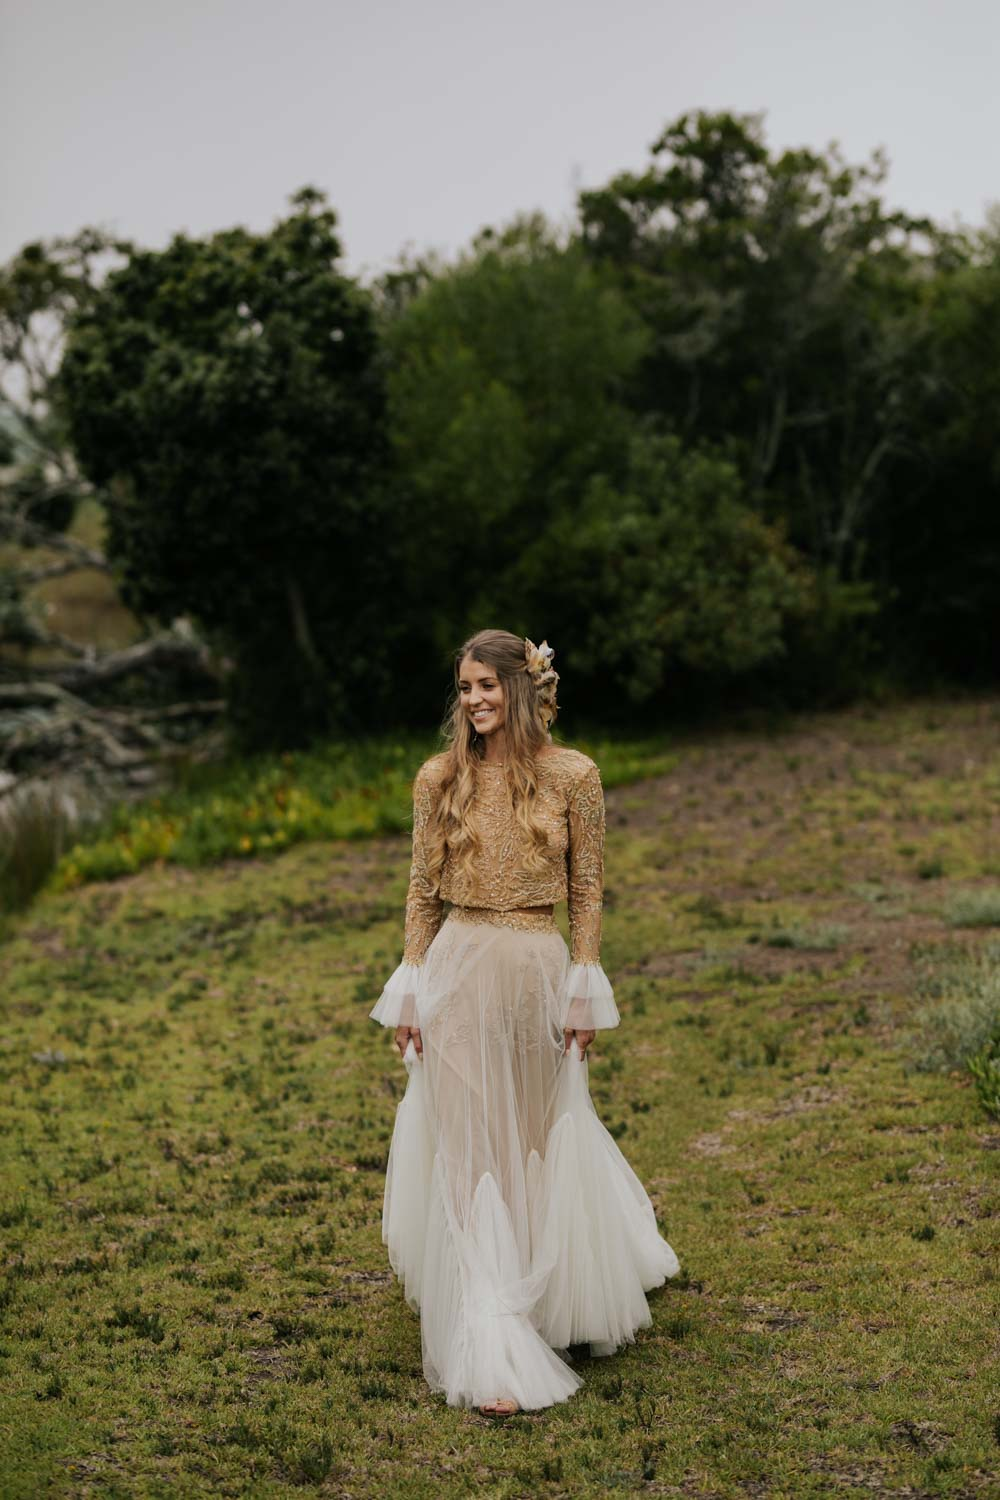 Boho bride with long curly blonde hair wears two piece gold and cream long sleeve wedding dress and feathers and plait in her hair